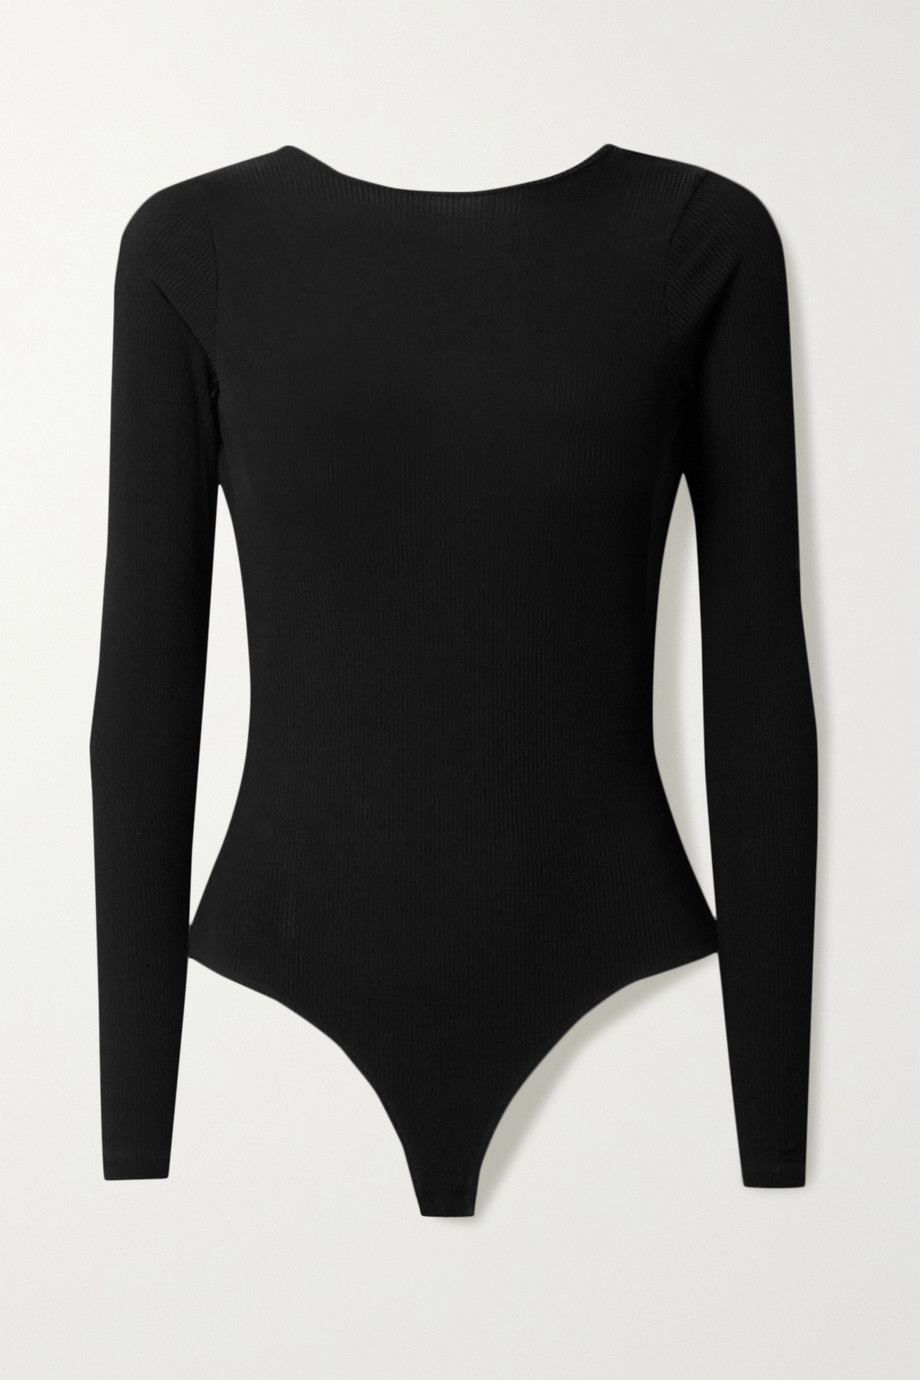 GOLDSIGN + NET SUSTAIN open-back ribbed stretch-jersey bodysuit